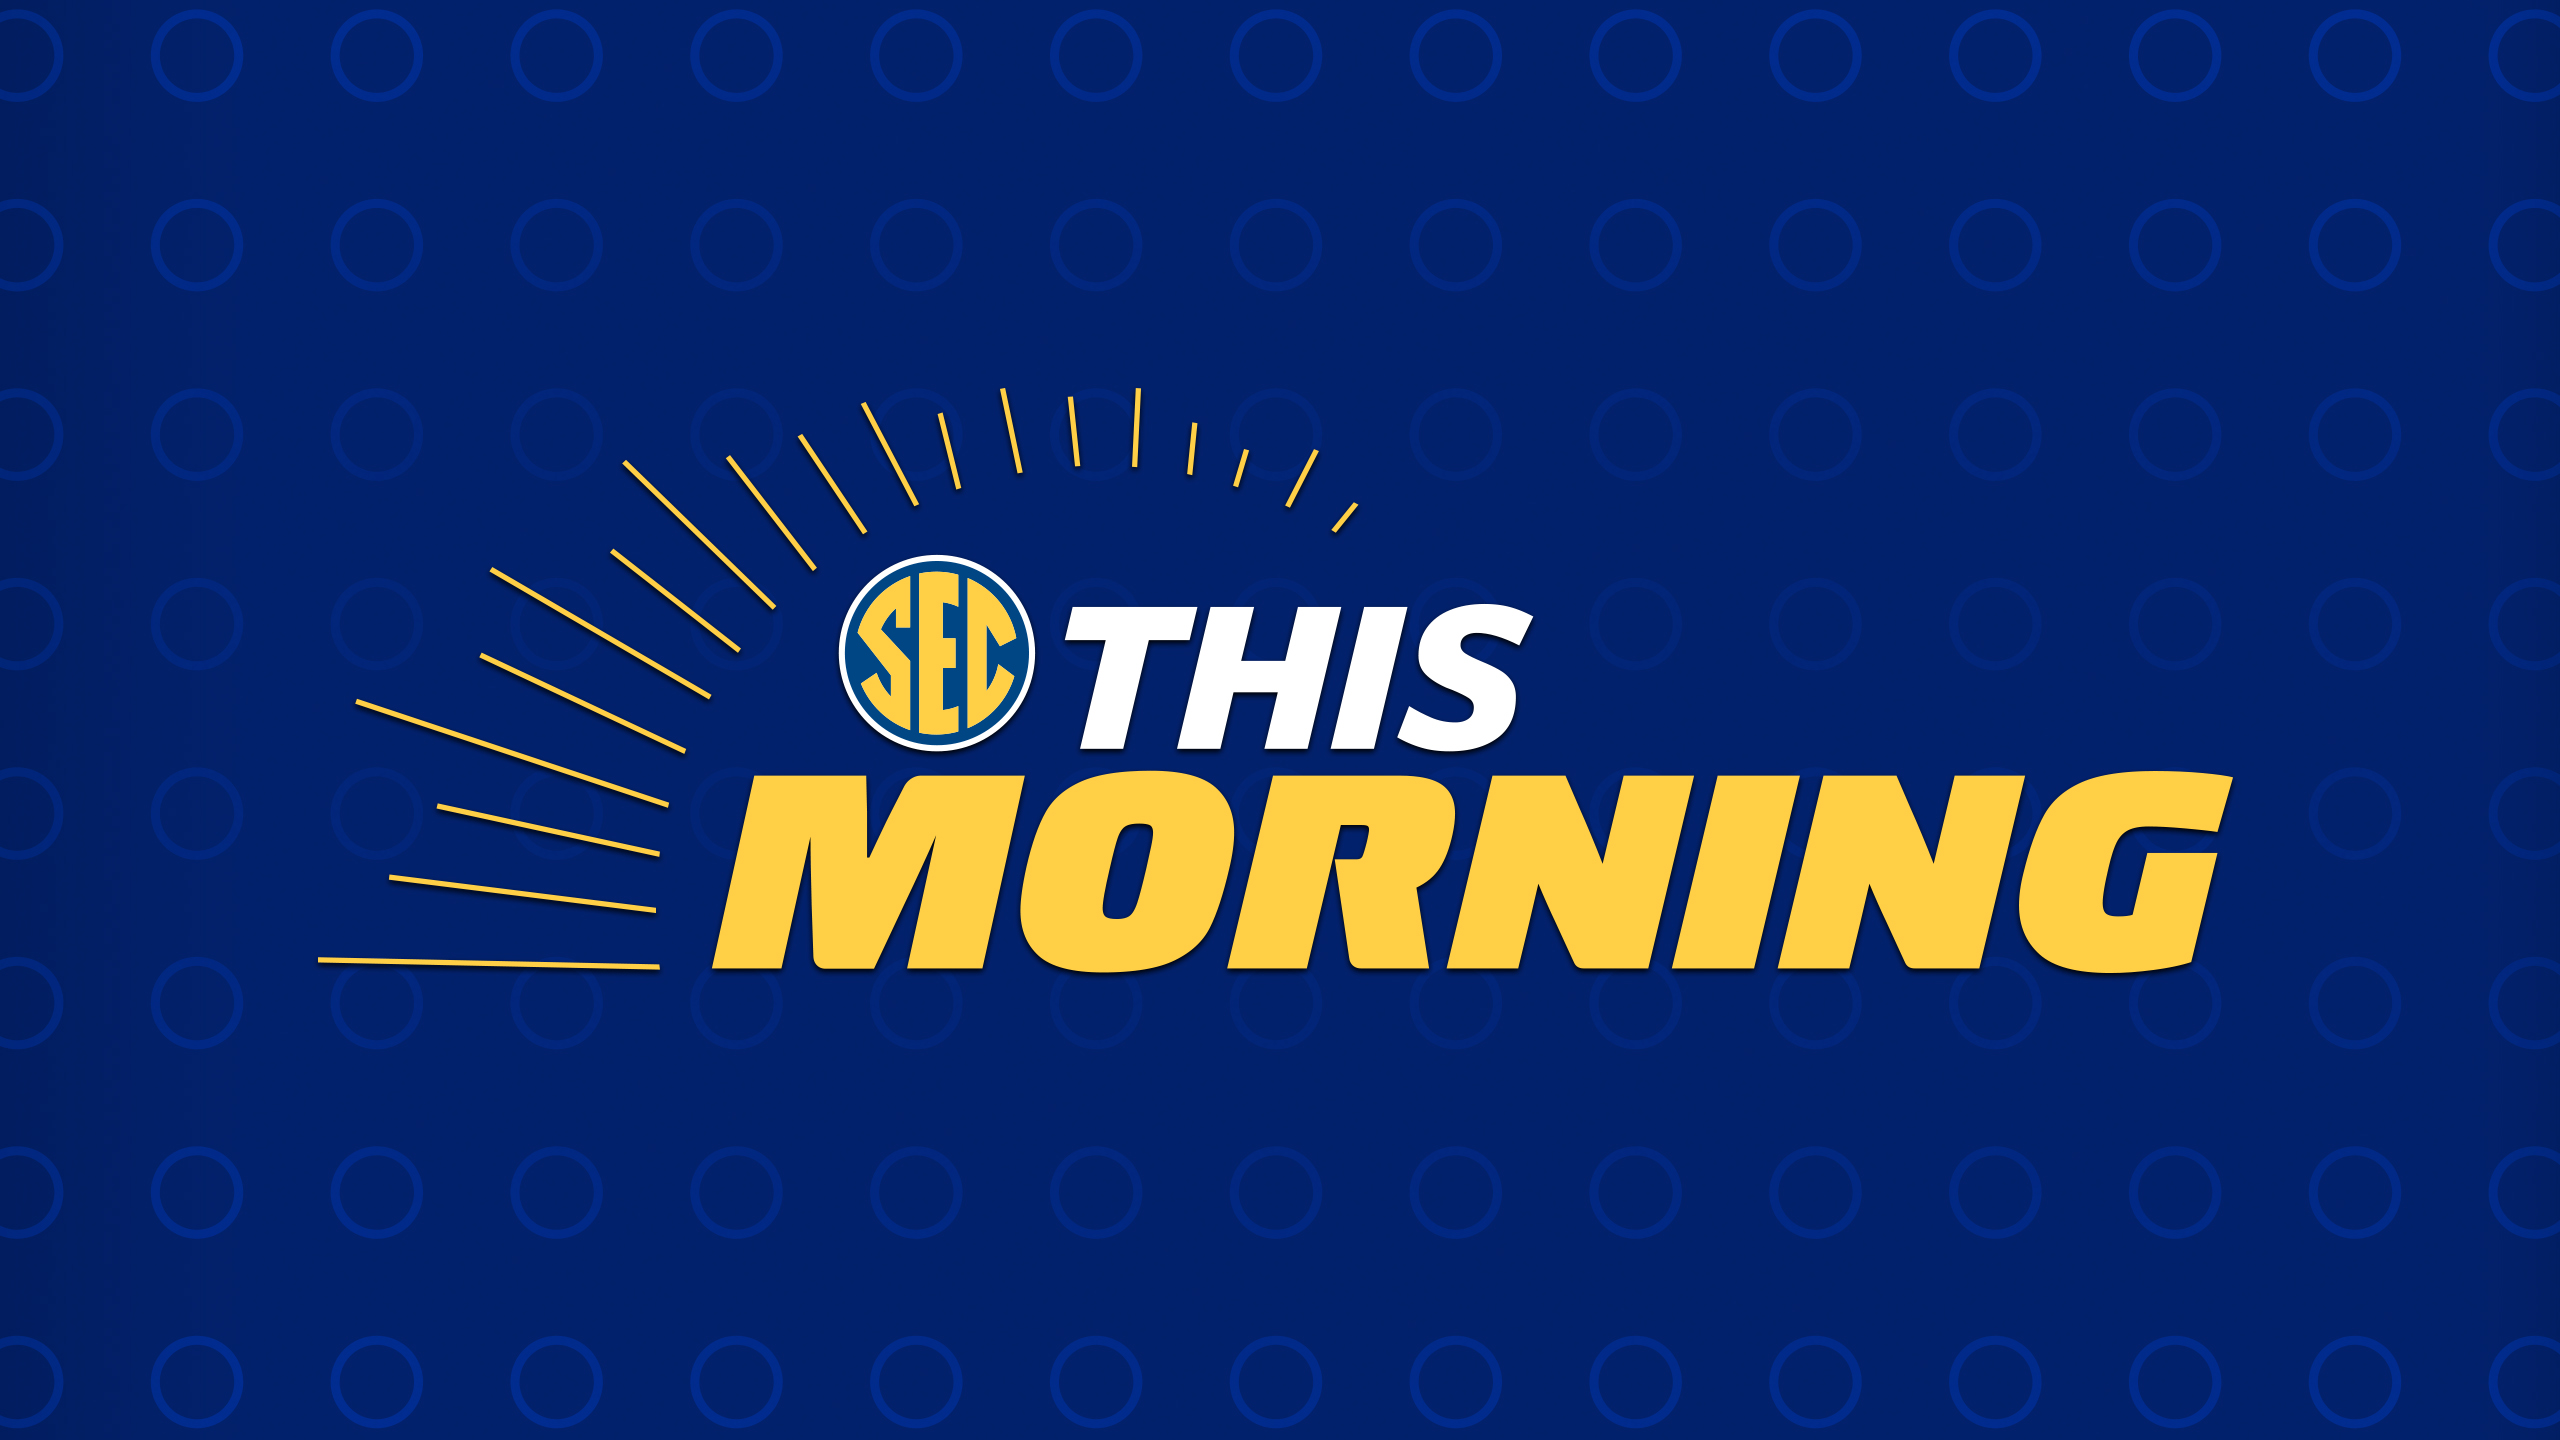 Tue, 10/23 - Best of SEC This Morning